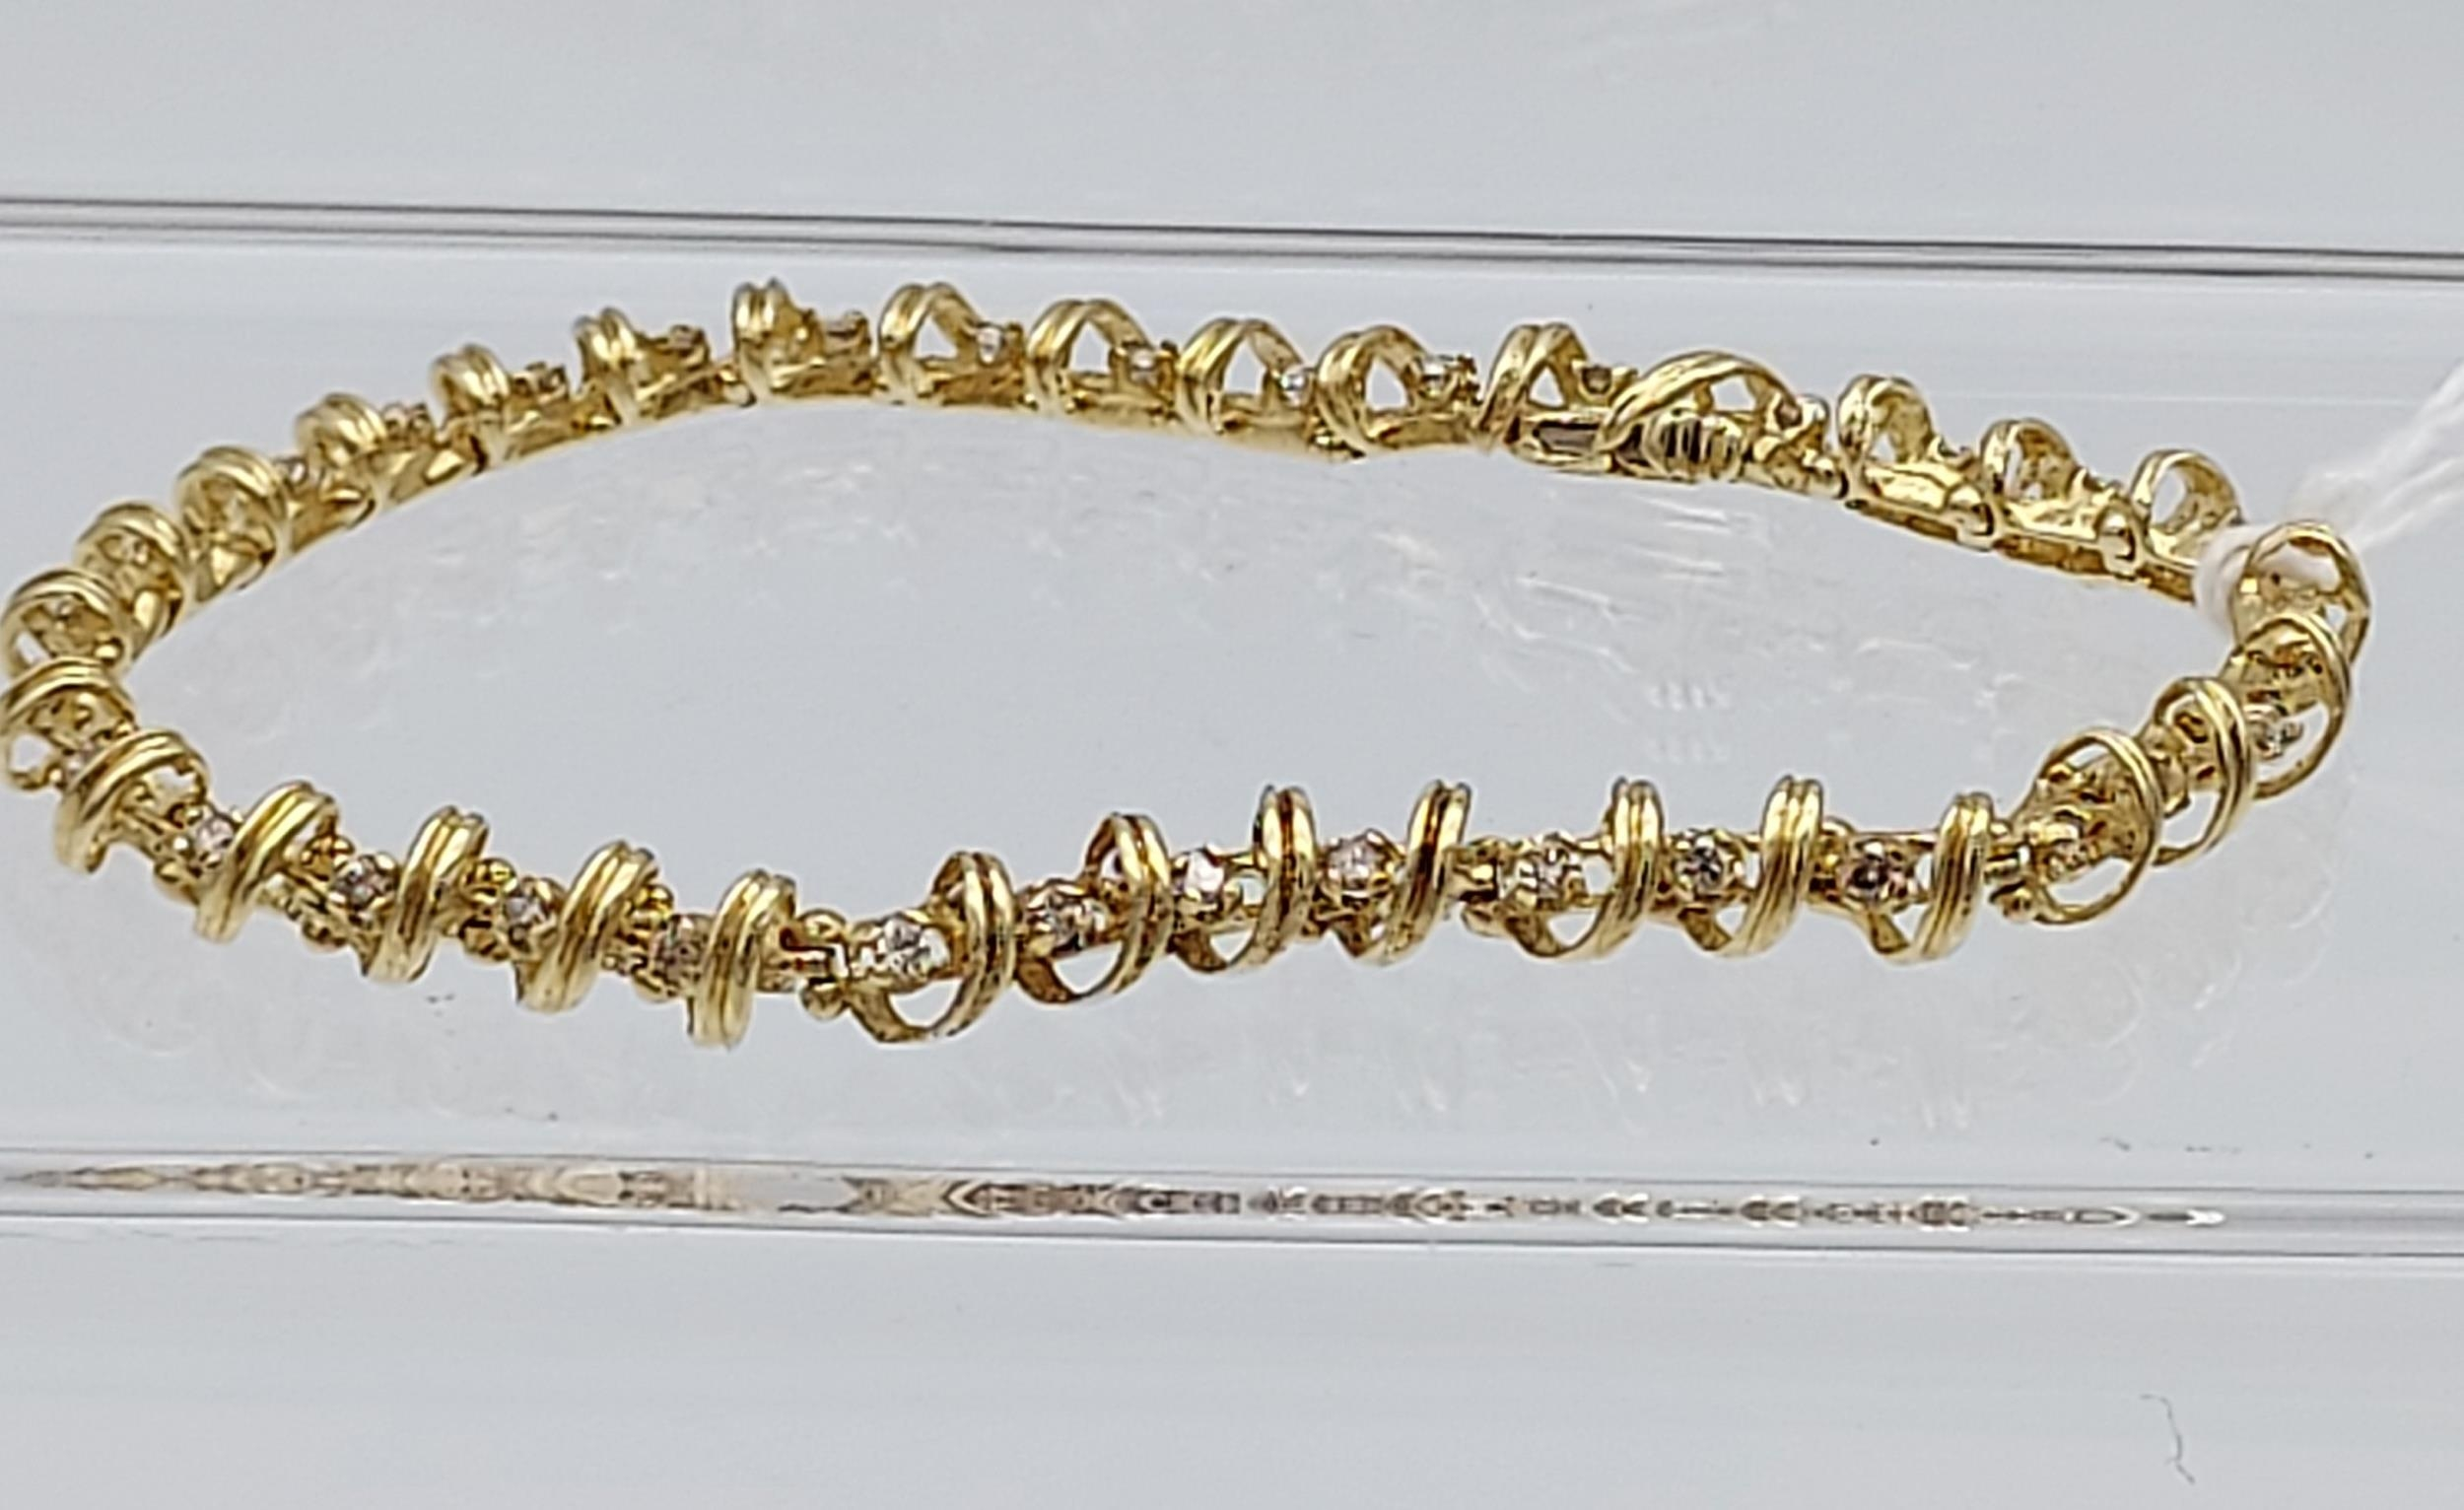 A 14ct yellow gold bracelet made up of 32 diamond panels [1ct approx] [9.58g] - Image 6 of 6